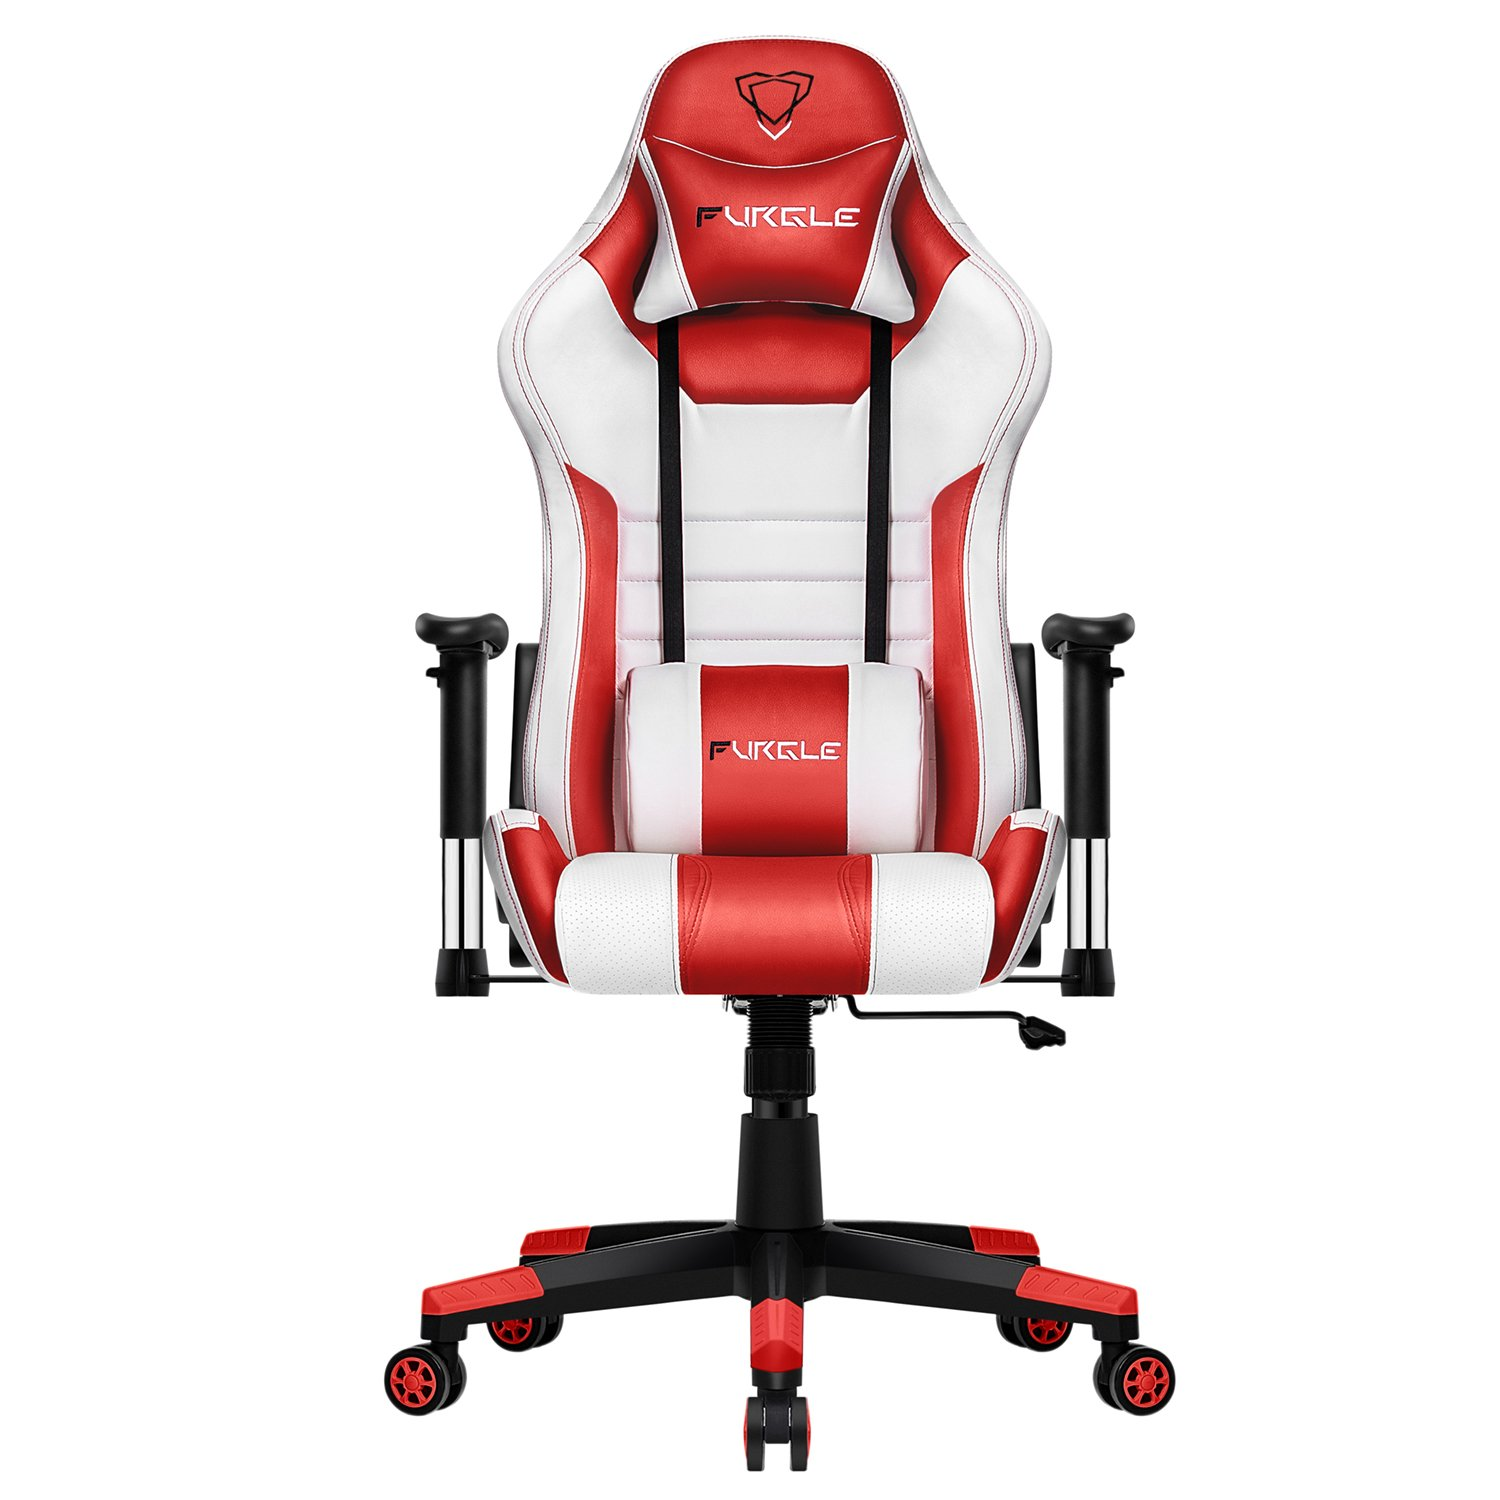 Furgle 180 degree reclining computer chair comfortable gaming racing office chair ergonomic leather boss chiar wcg free shipping